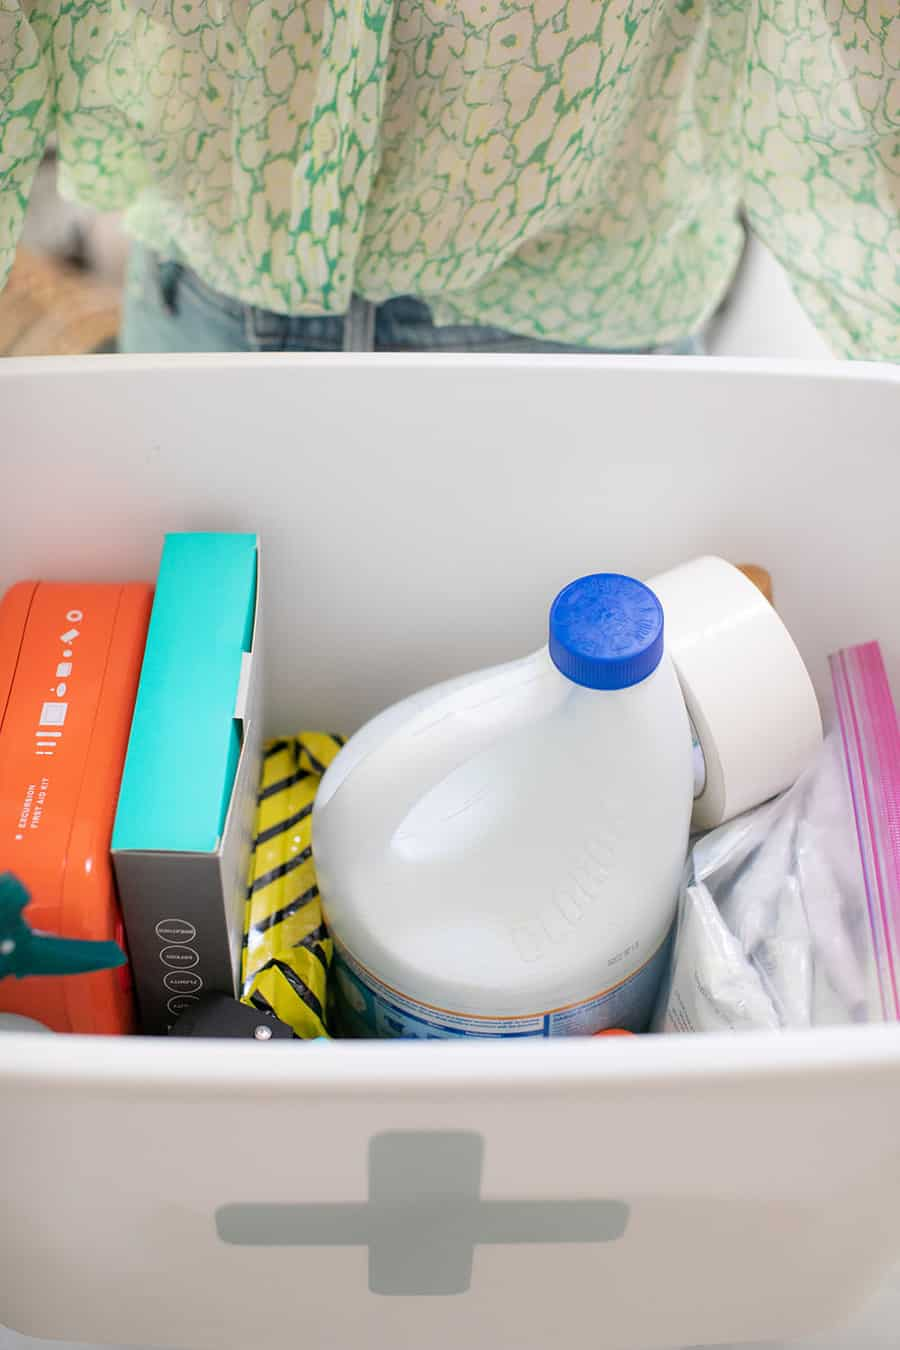 Emergency kit bucket with bleach, tape, masks, first aid kit and more items.